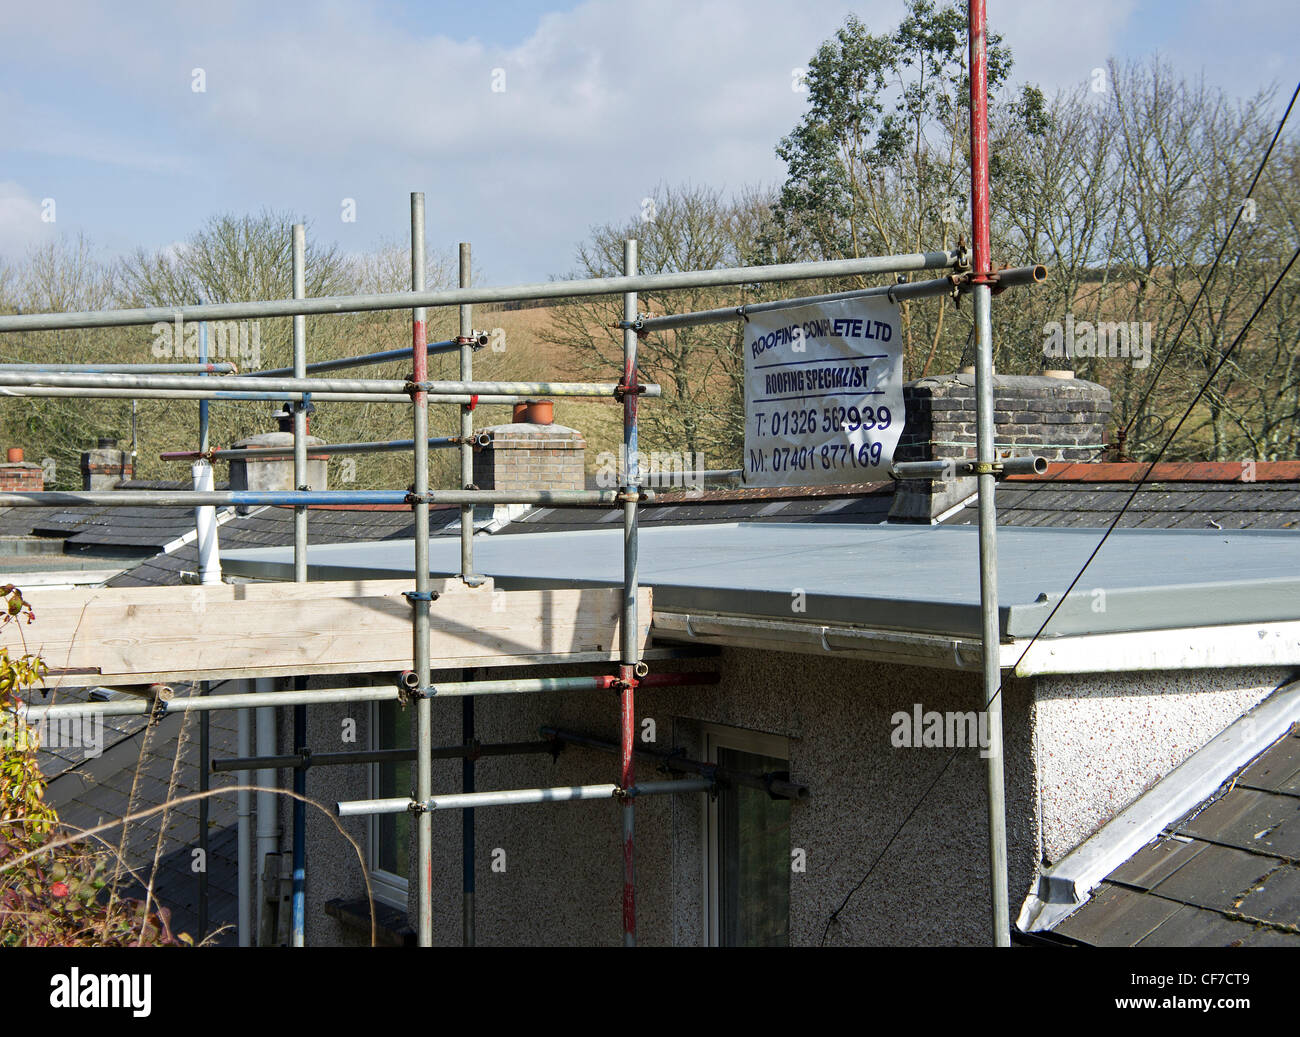 Scaffolding on a house that has had some repairs done to the roof, uk Stock Photo